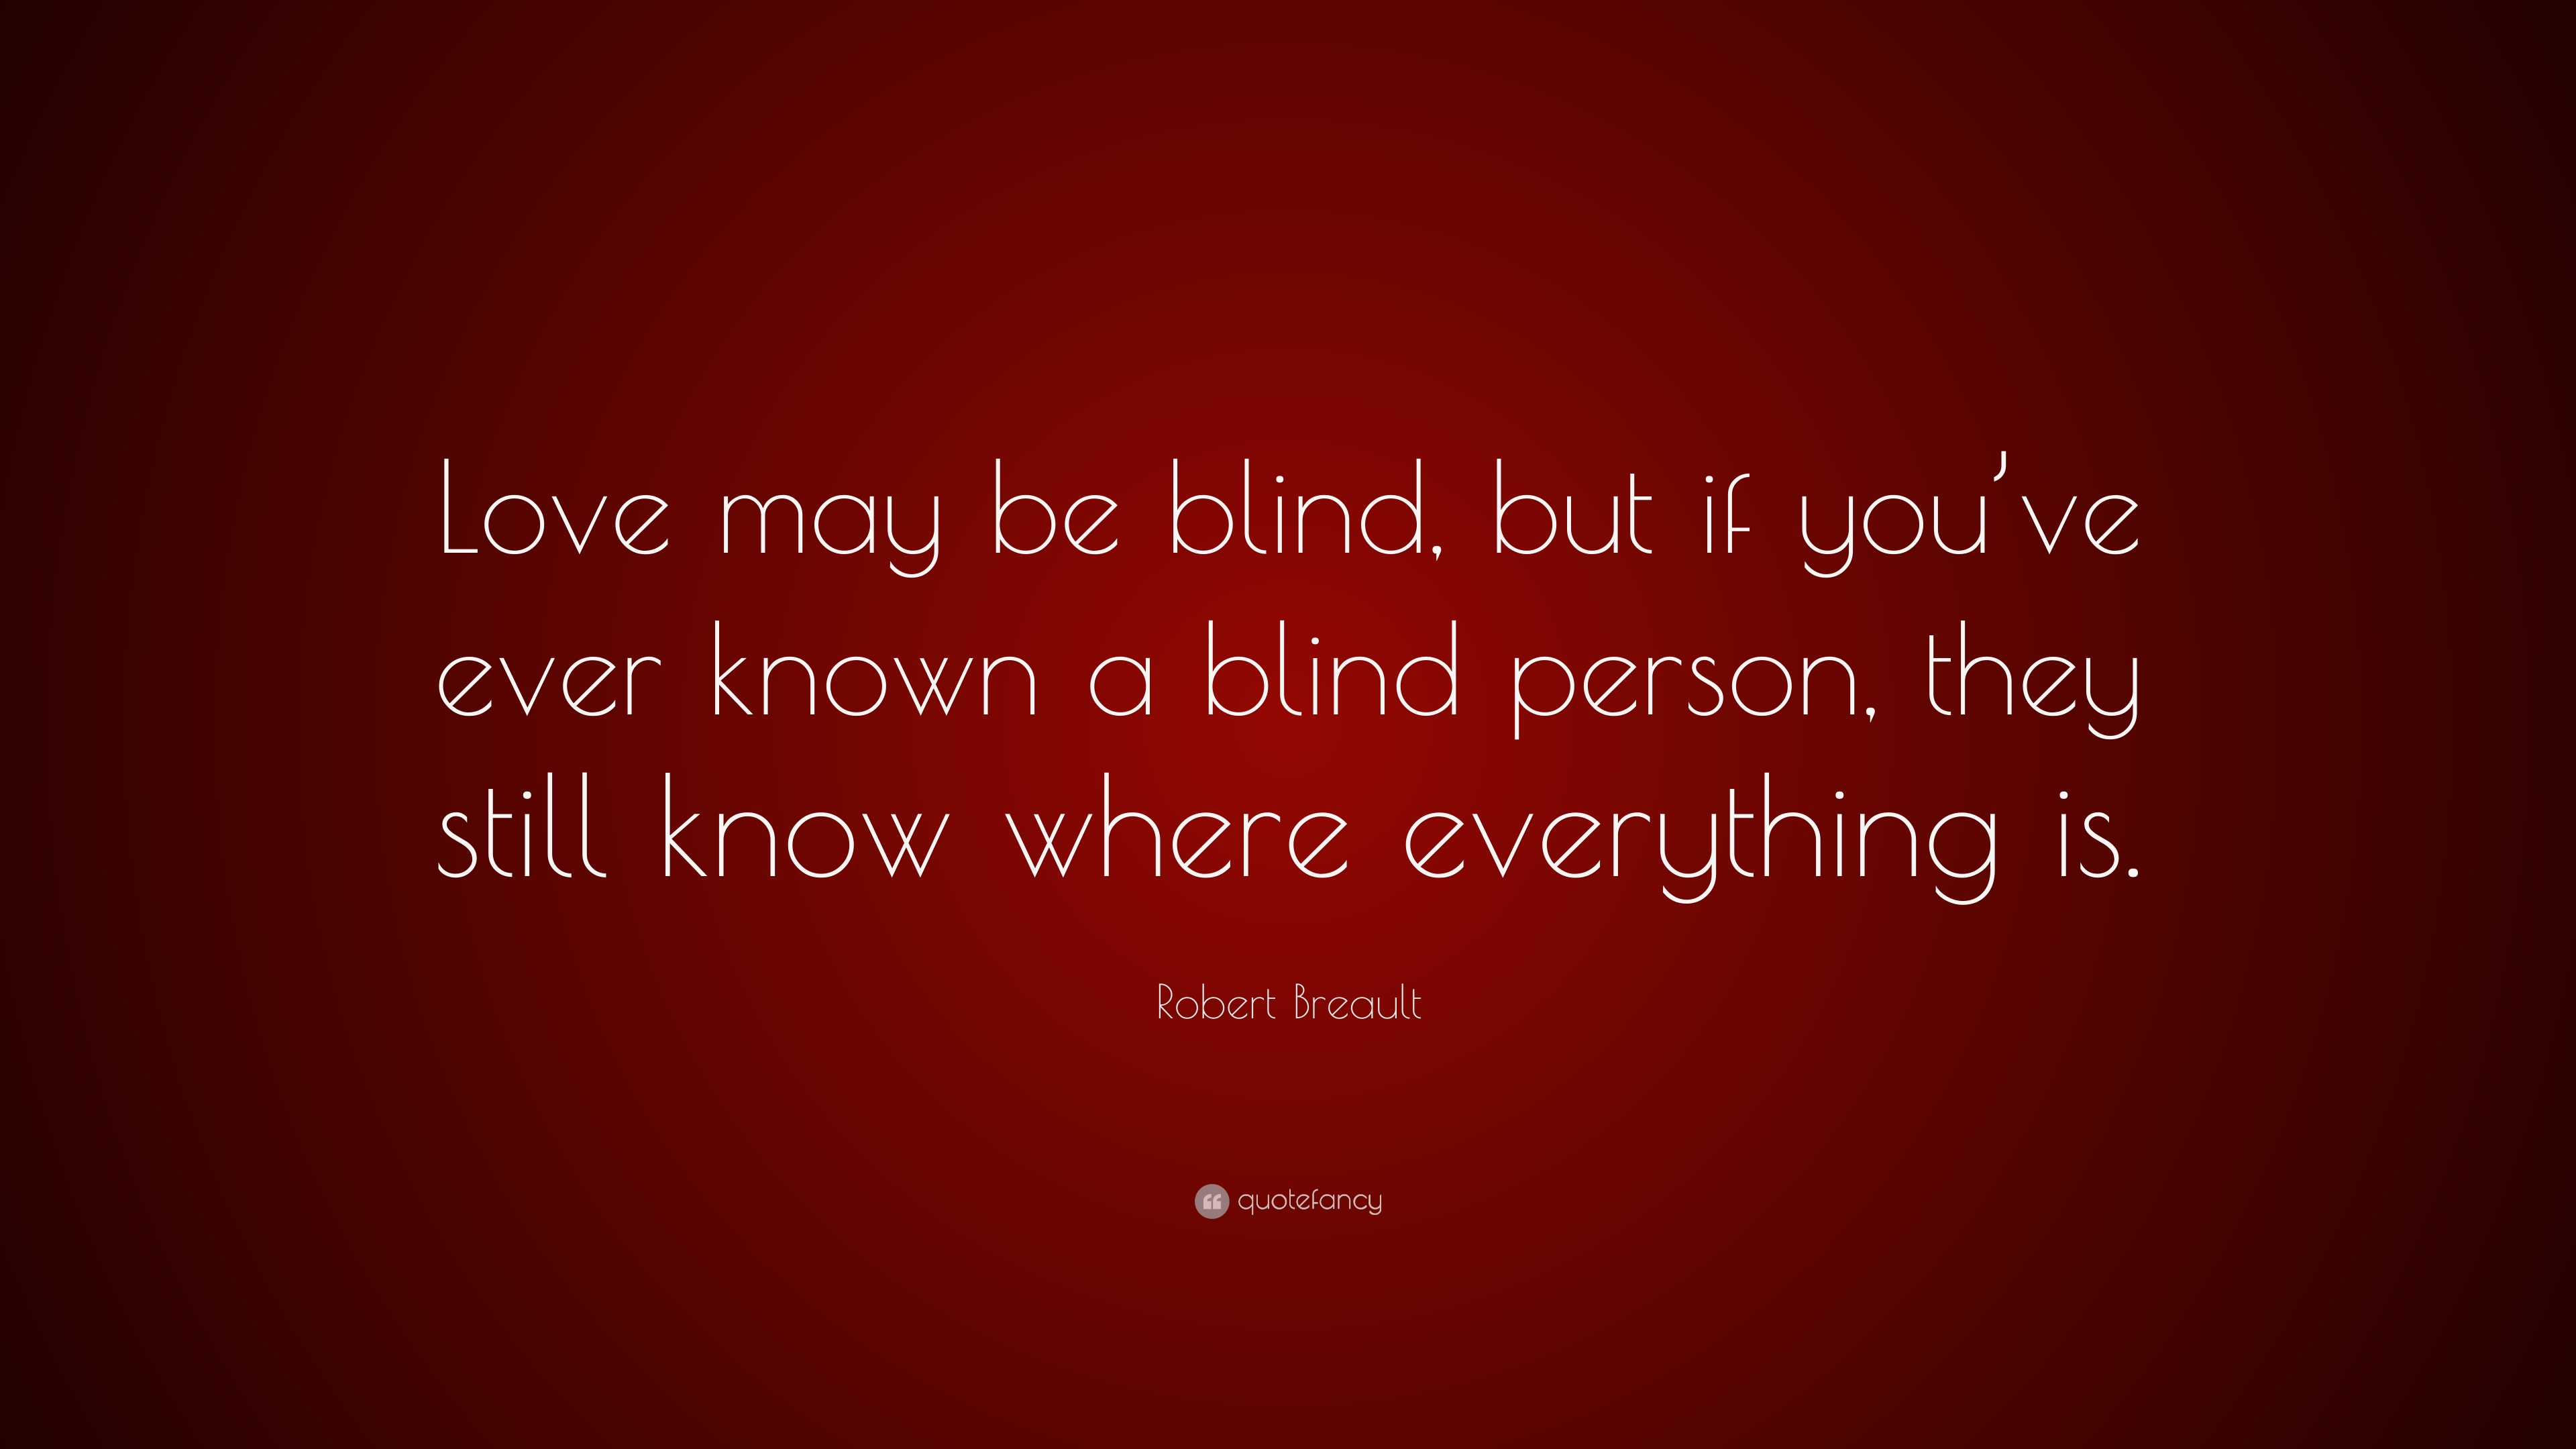 Robert Breault Quote: U201cLove May Be Blind, But If Youu0027ve Ever